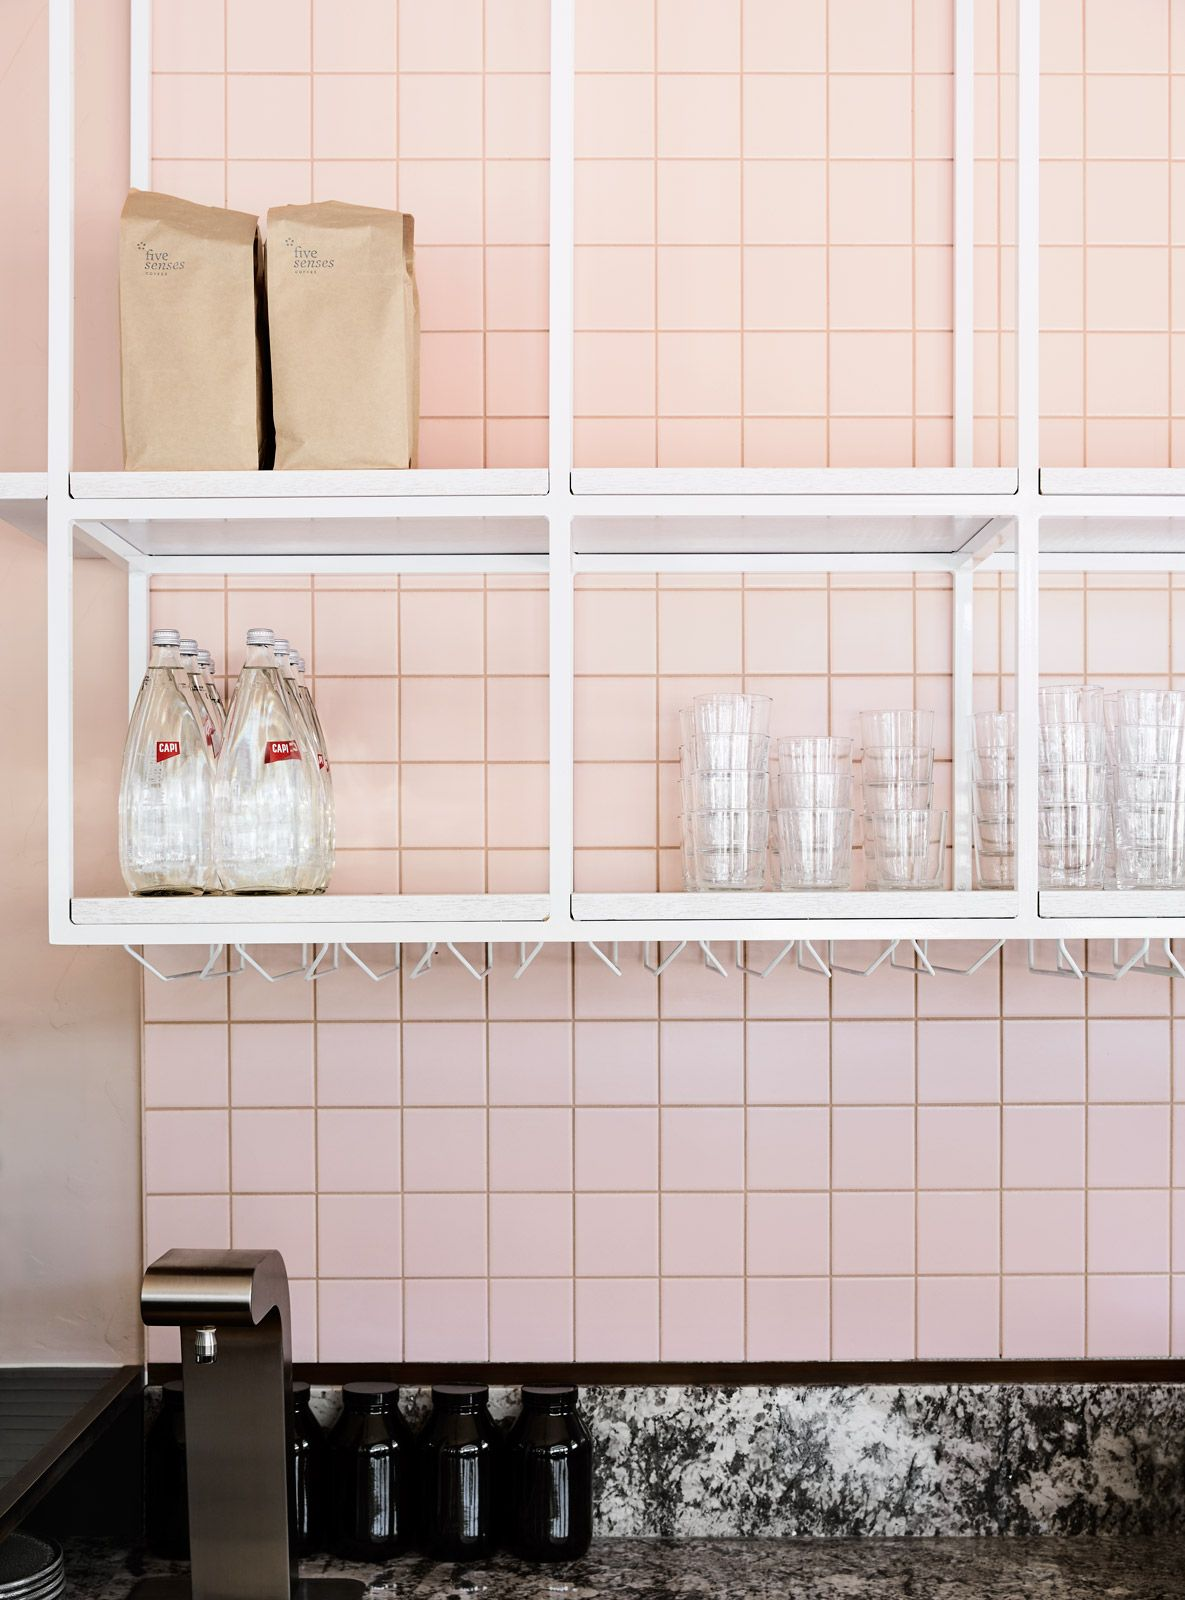 Cafe Design by Huntly   Moby 3143 Cafe in Armadale, Australia wear ...